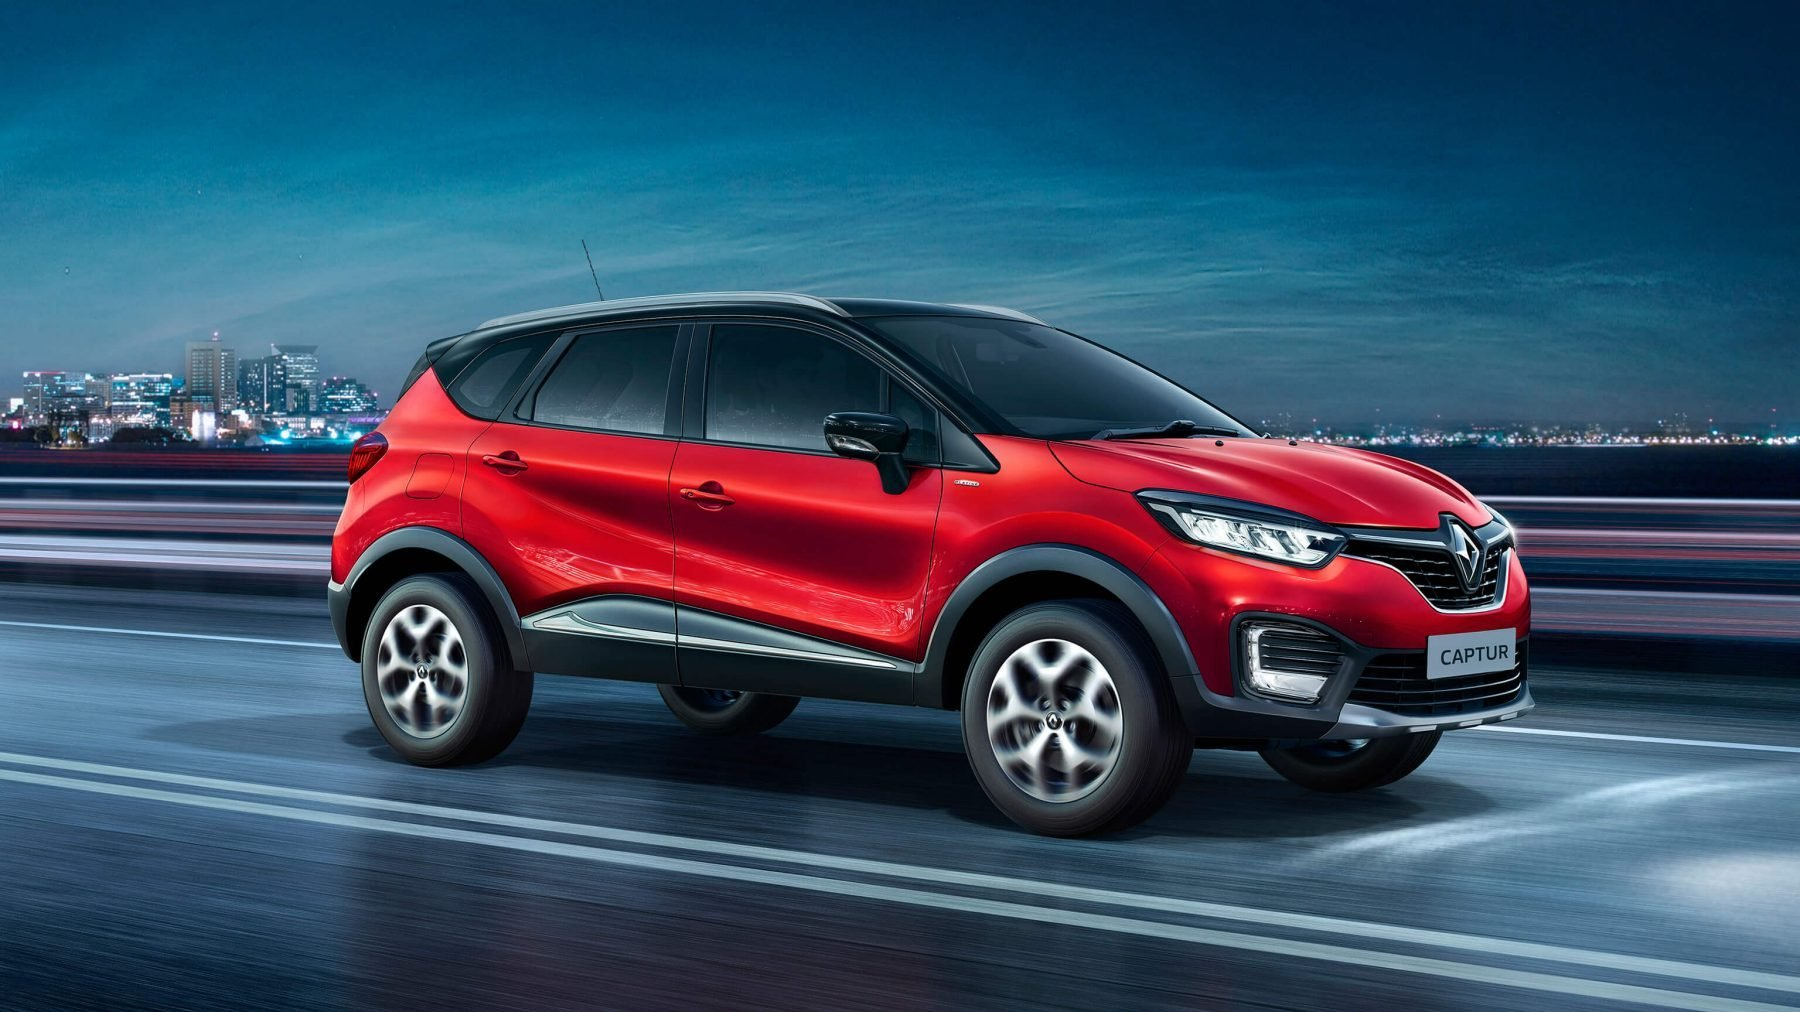 All about Renault Captur